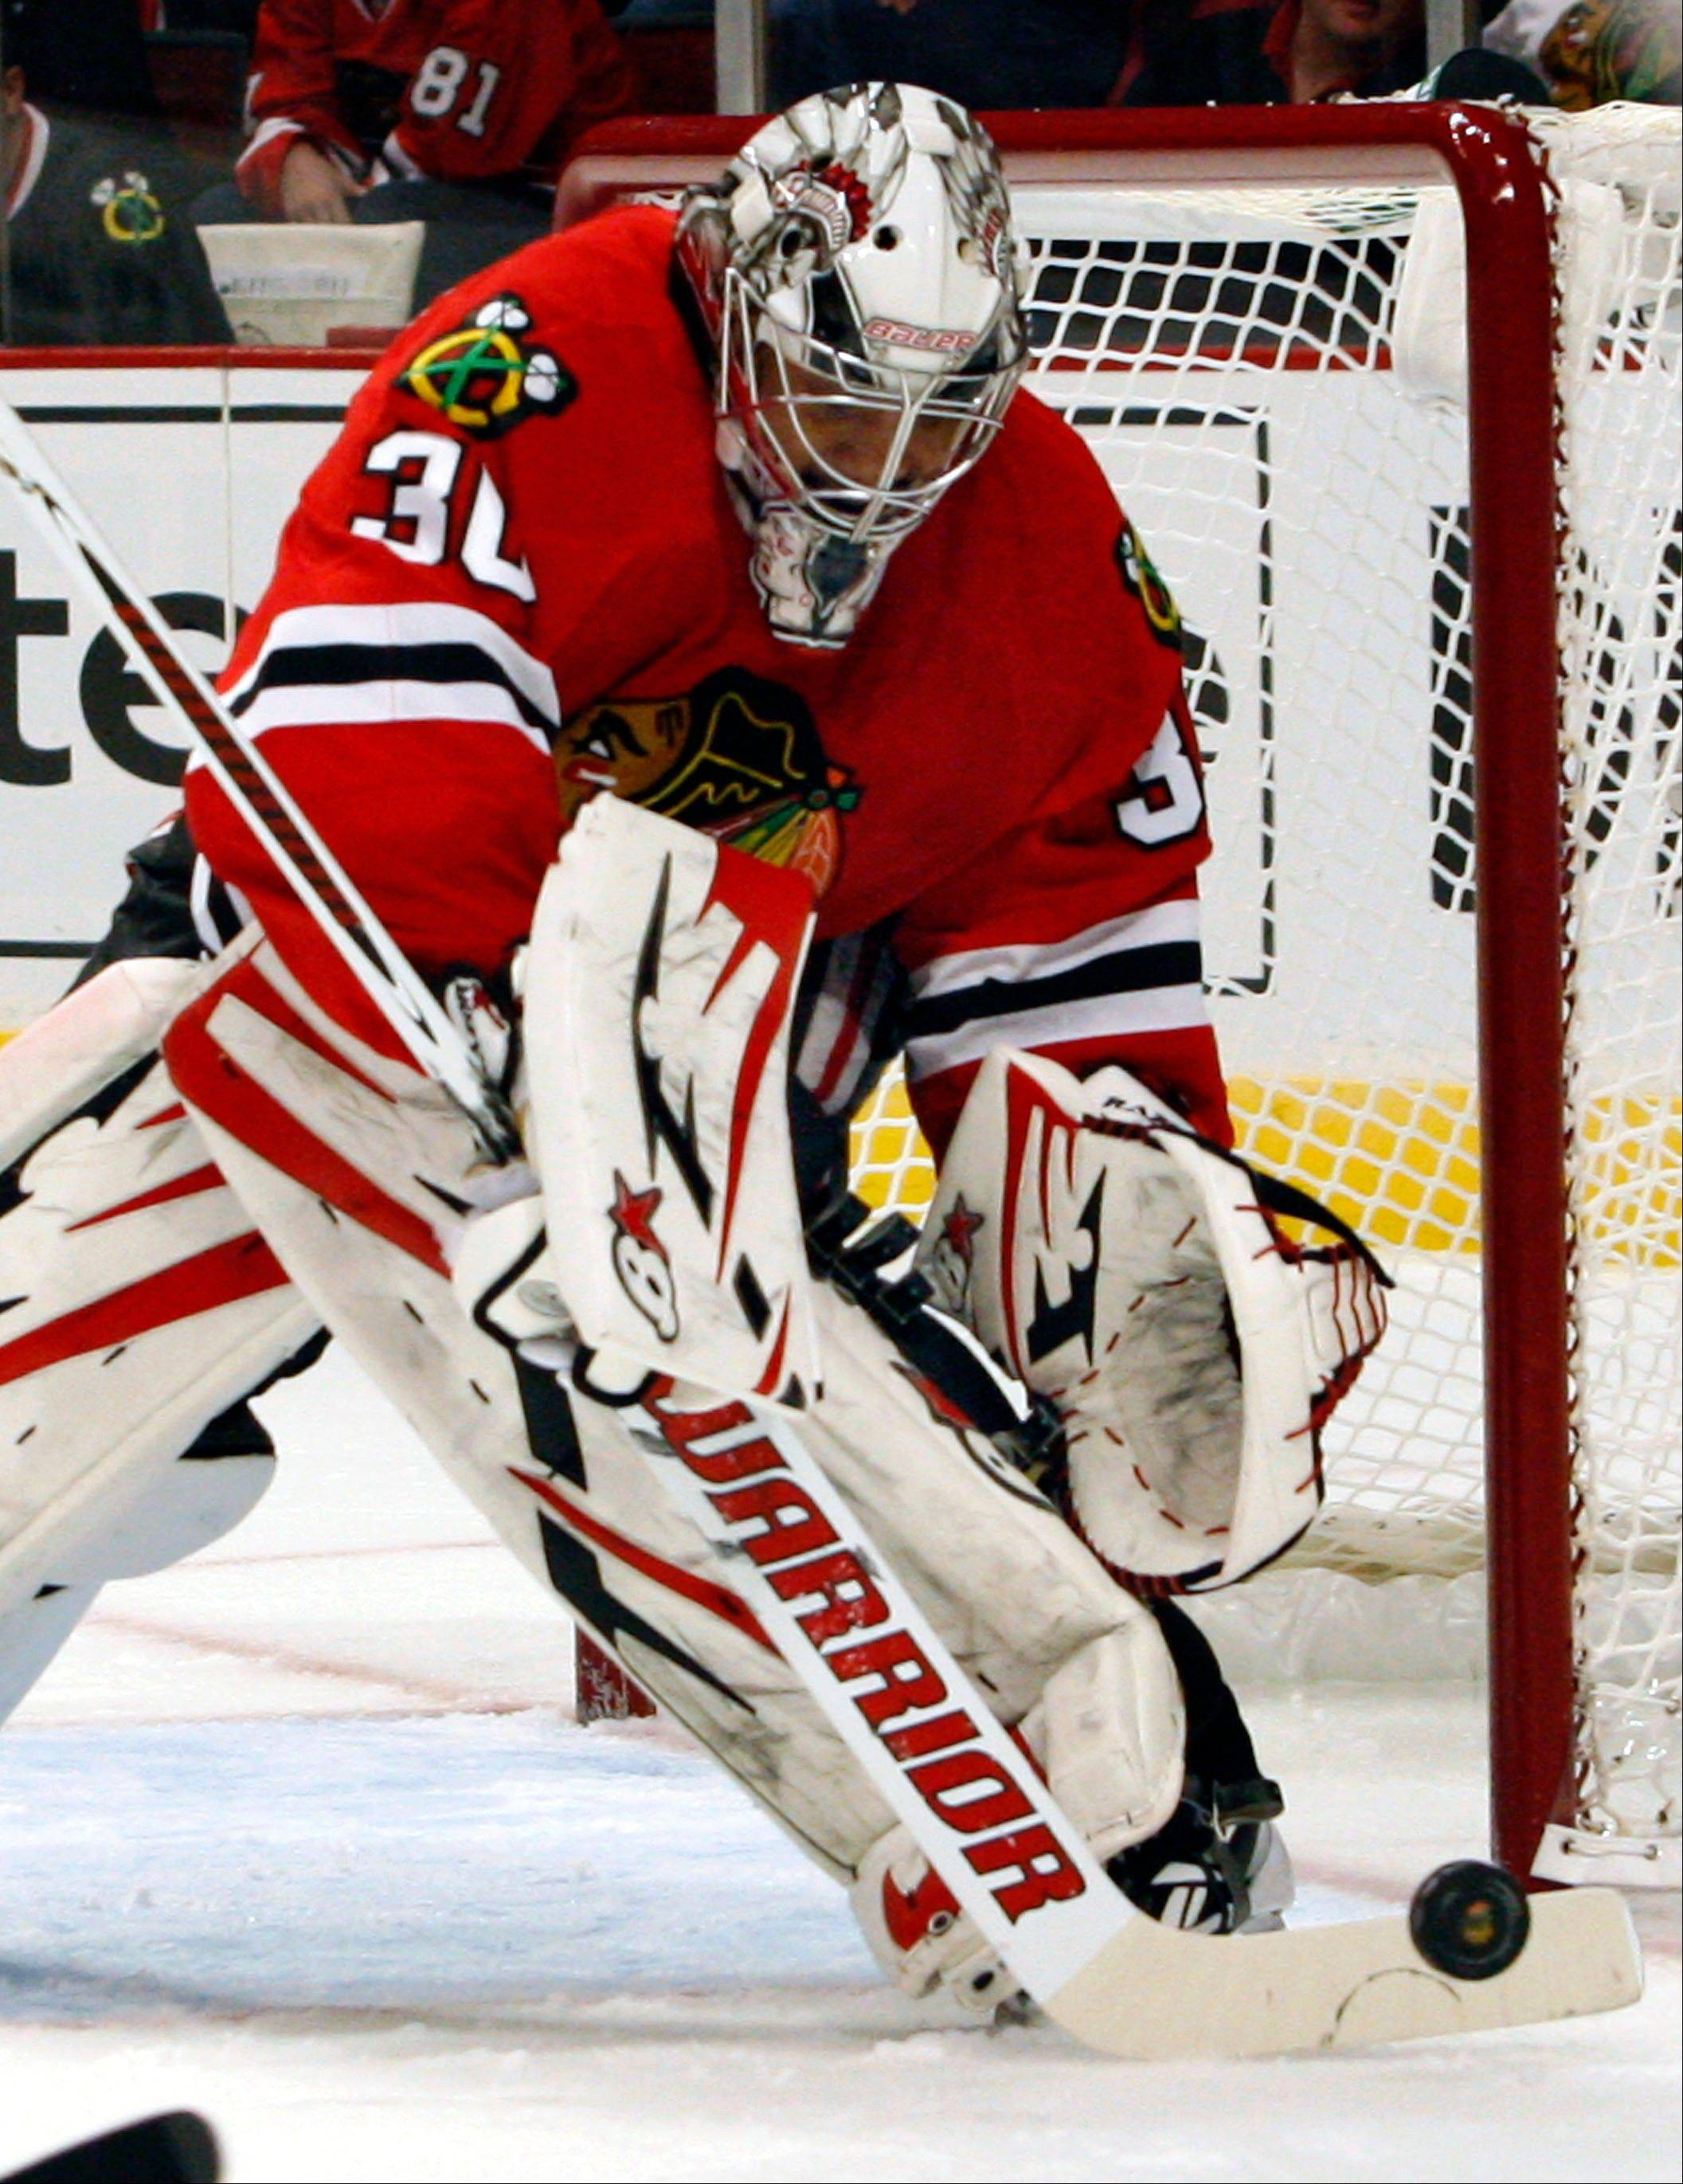 Blackhawks goalie Ray Emery stops a shot from the Los Angeles Kings in the first period of Sunday's 3-2 Hawks victory at the United Center.